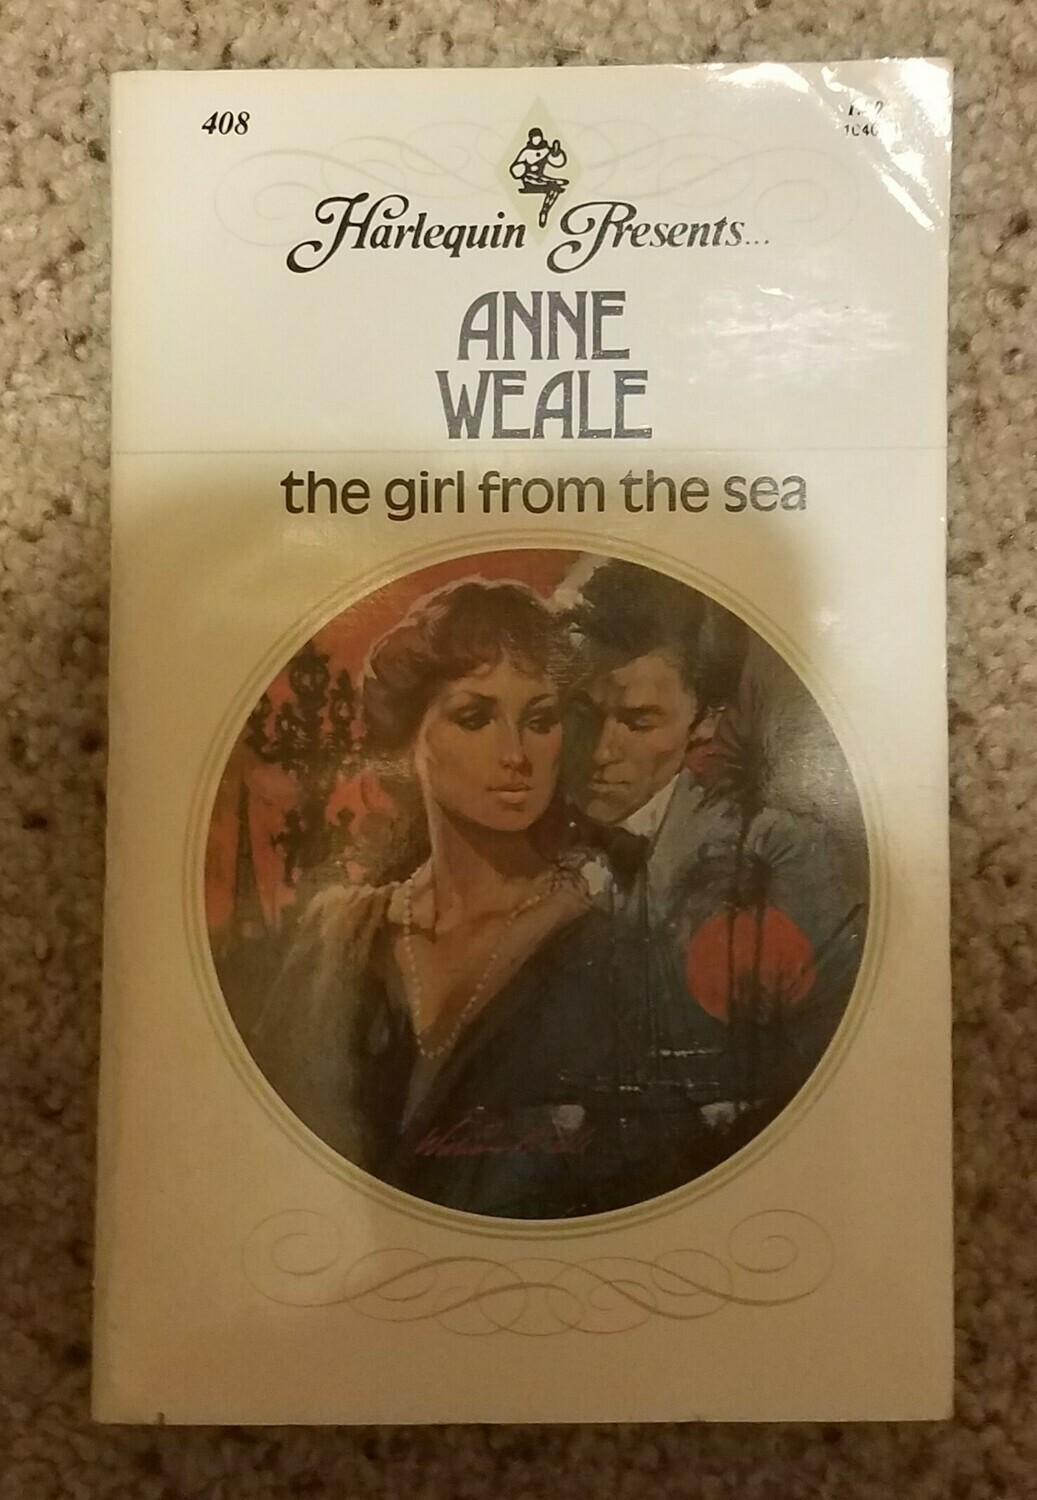 The Girl from the Sea by Anne Weale